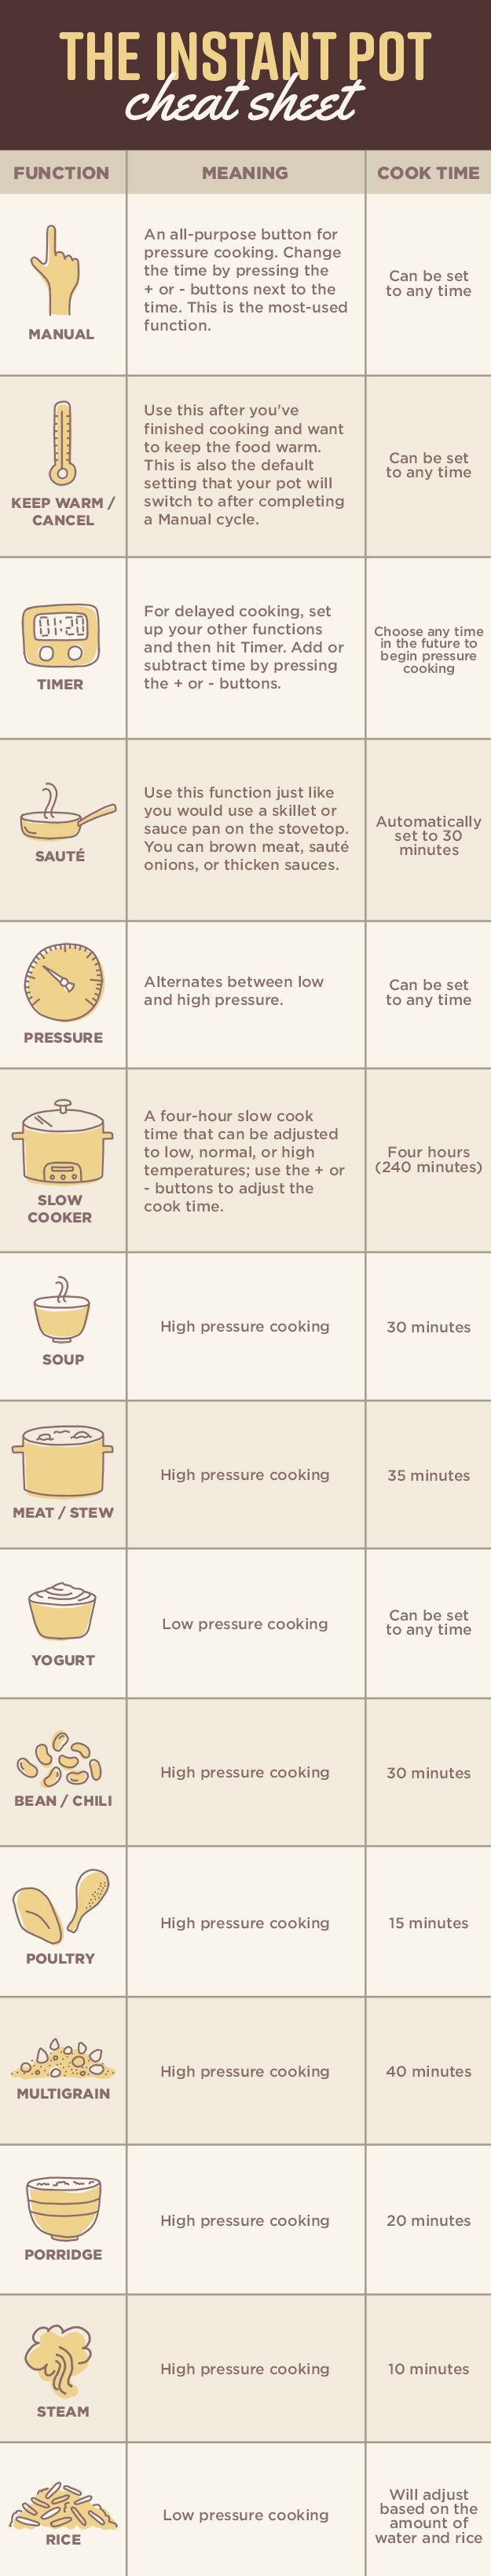 Get to know all of the Instant Pot's functions.